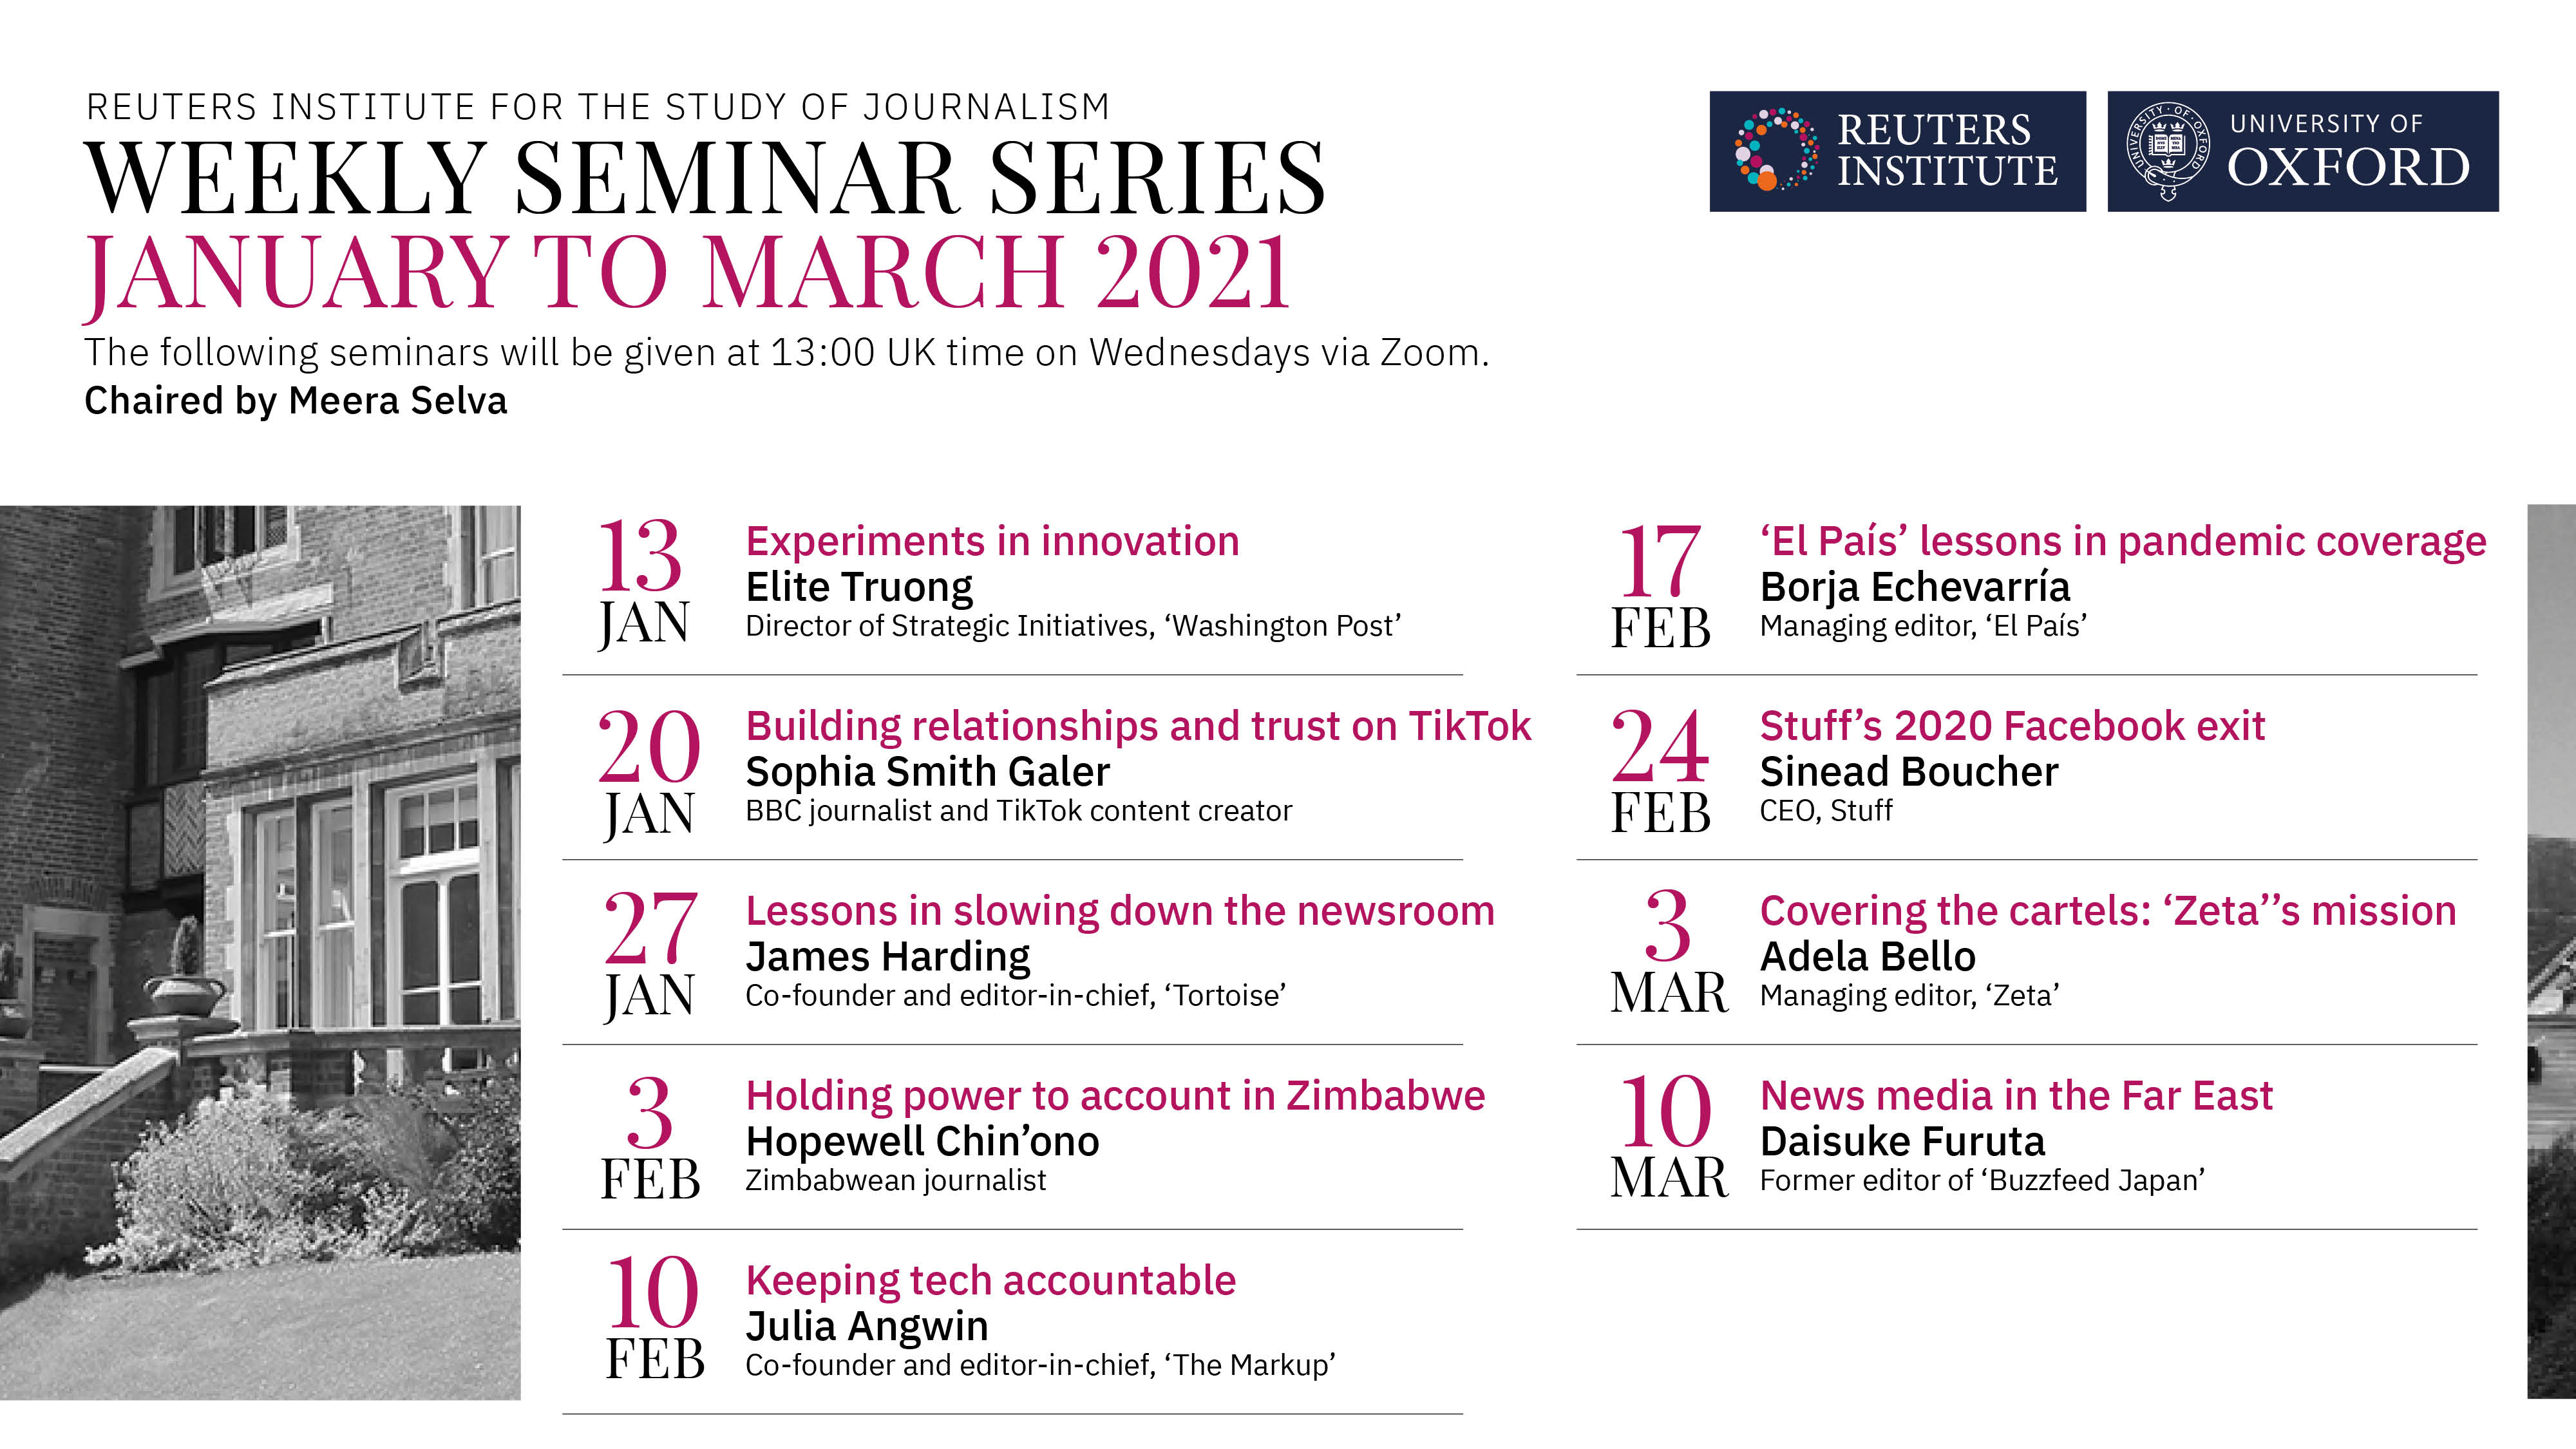 Our global journalism seminar series from January to March 2021.